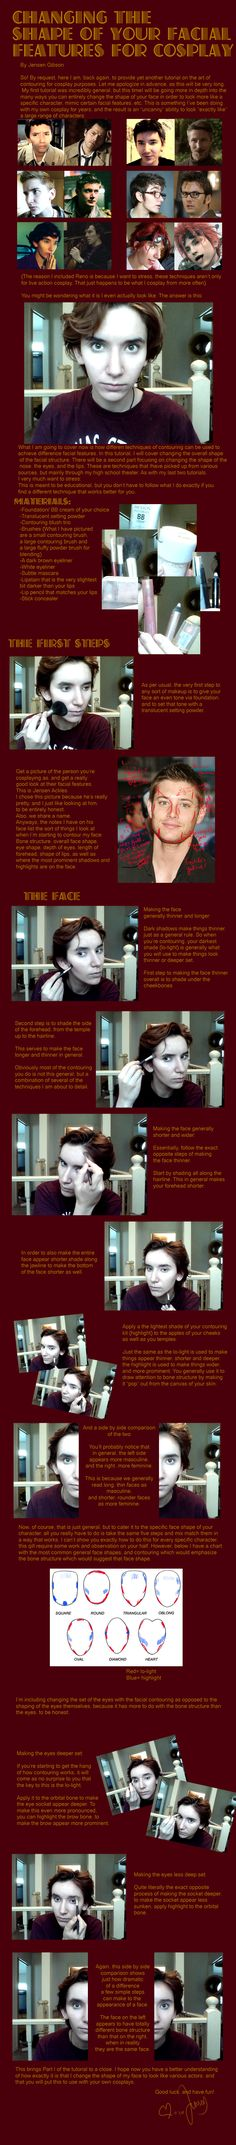 Changing the shape of your facial features, pt 1 by Sock-Monkey-Renegade on deviantART